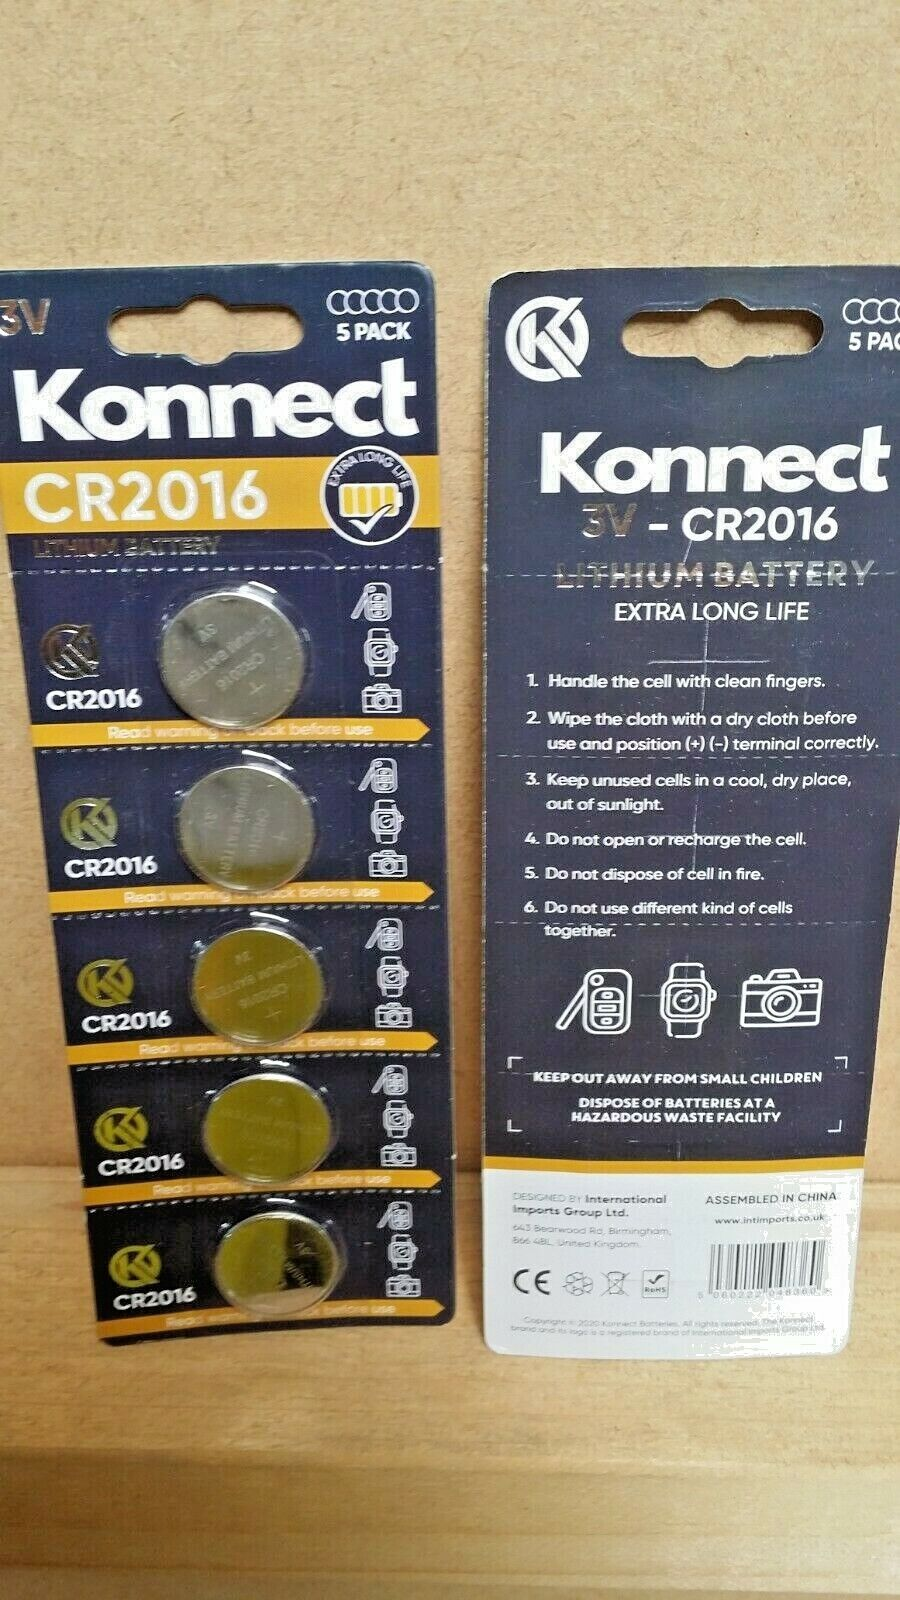 Pack of 5 Konnect CR2016 3v Lithium Cell Batteries Extra Long Life DL2016